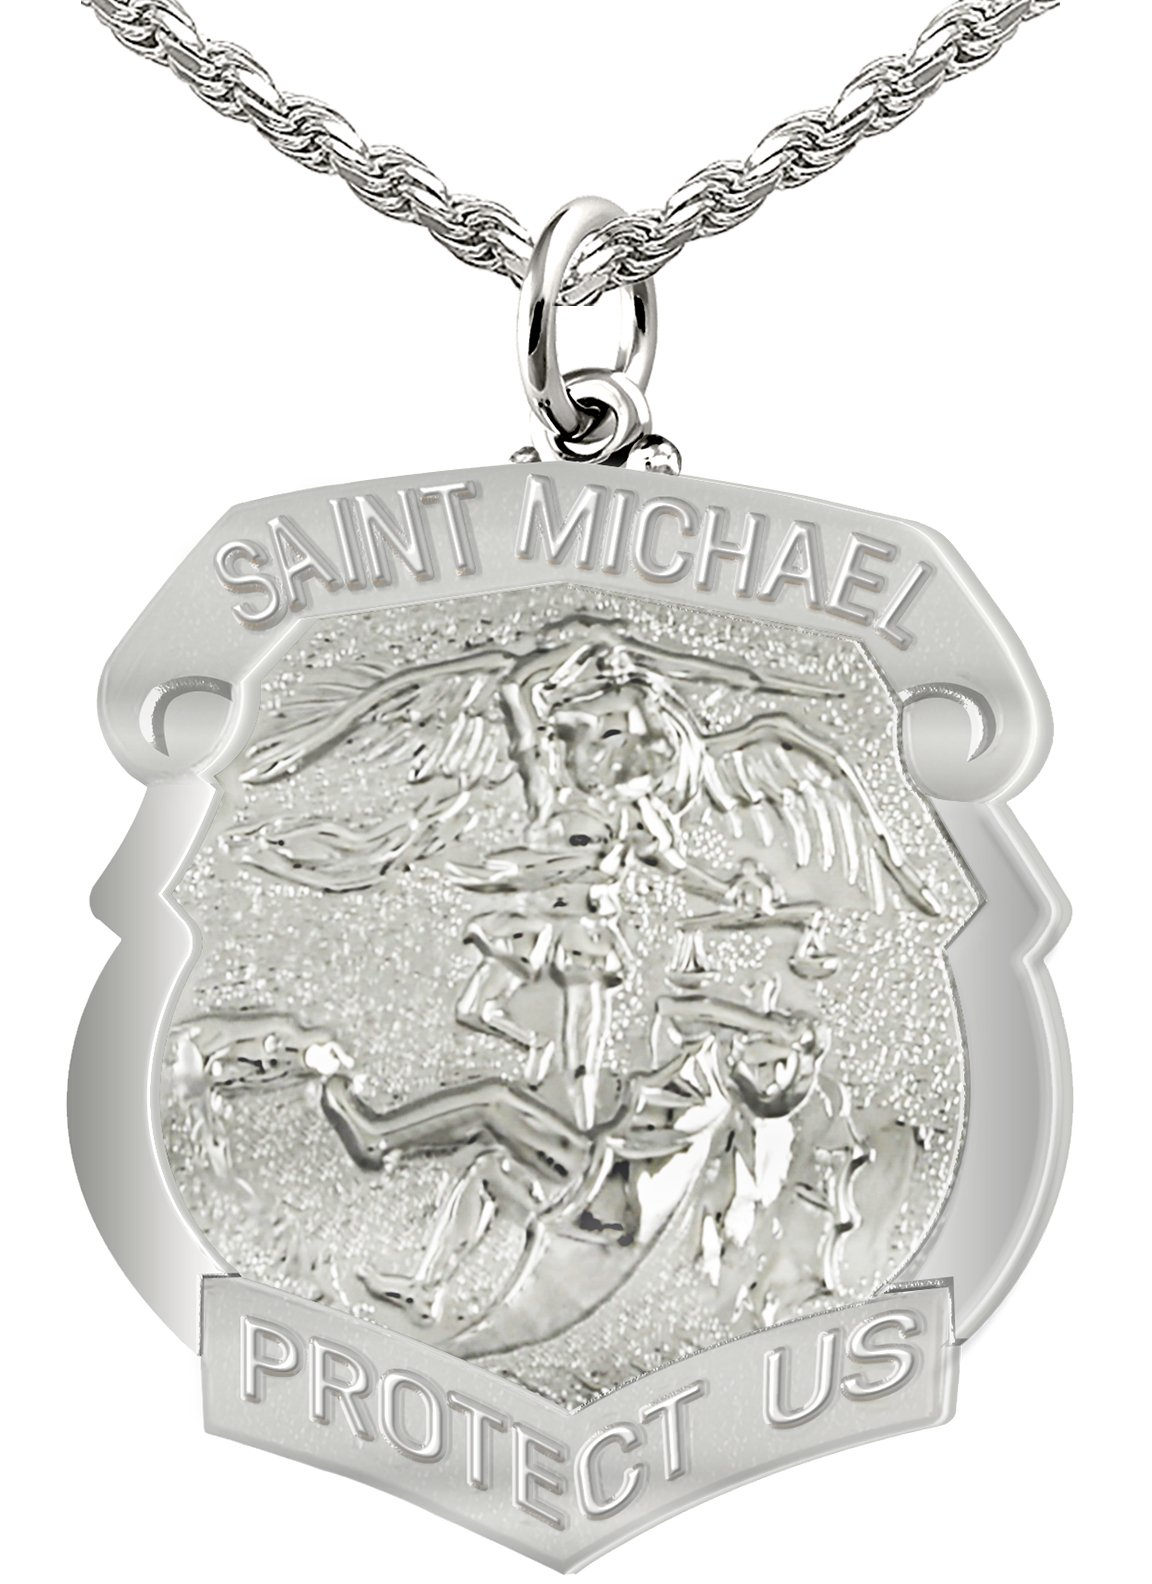 Women's 0.925 Sterling Silver Saint Michael High Polished Shield Badge 0.75in Pendant 1mm Rope Necklace, 18''